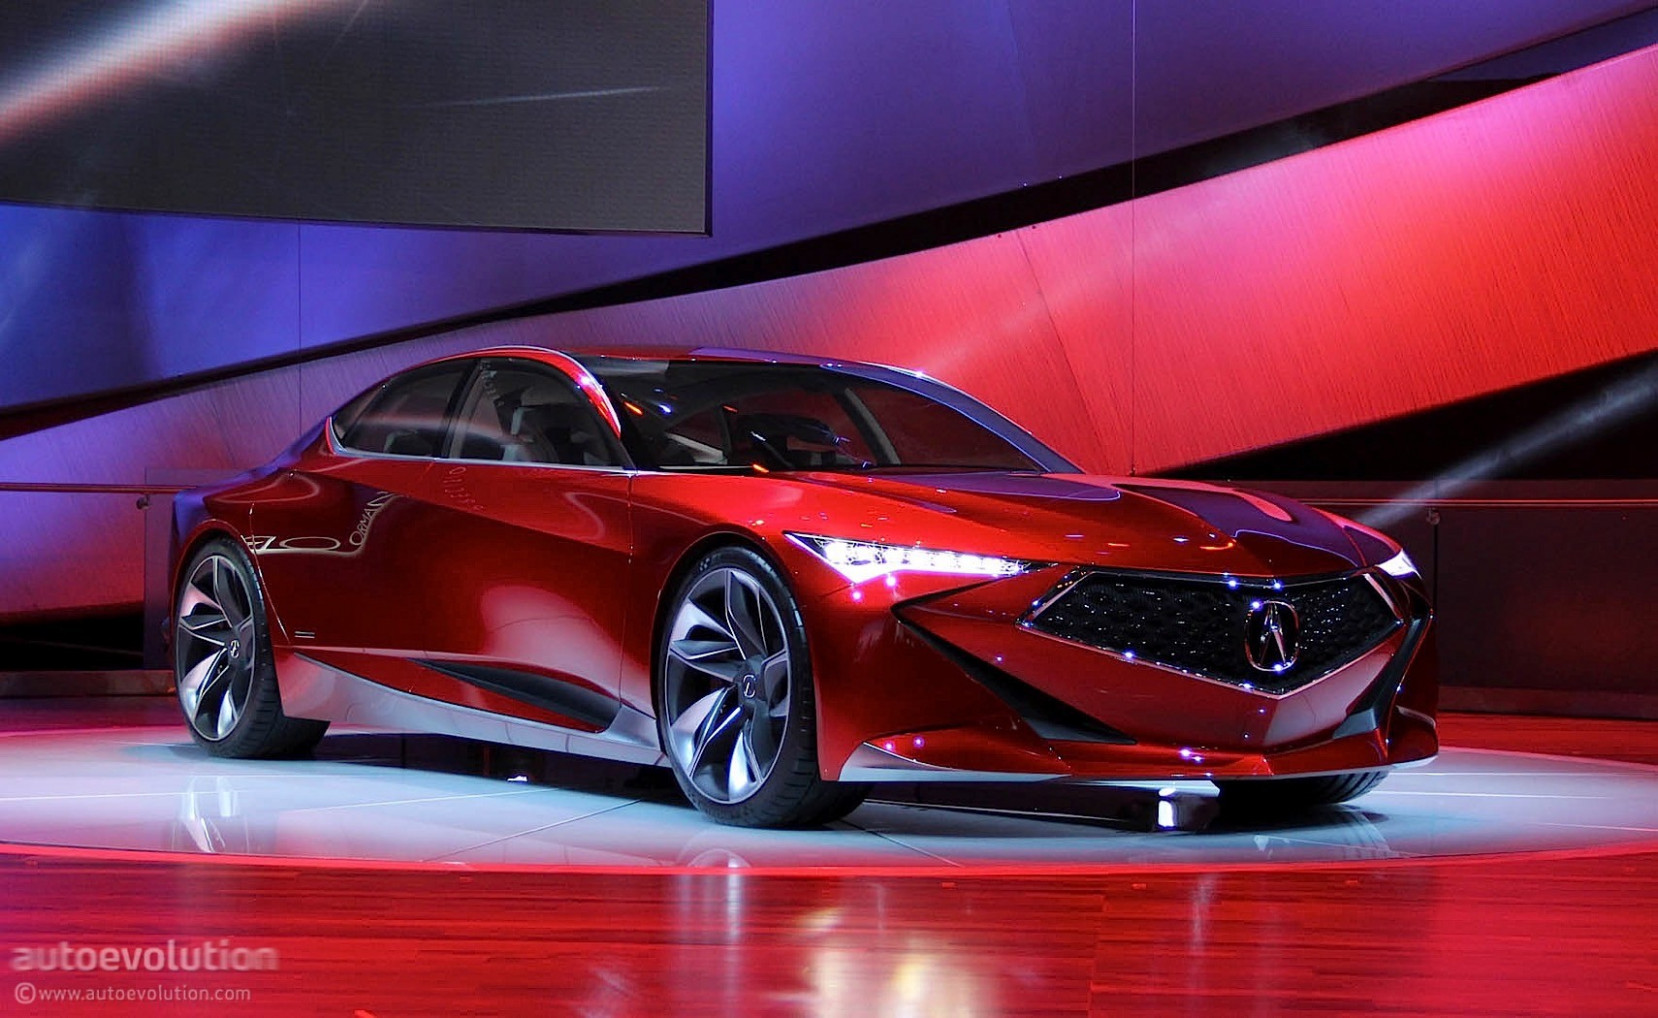 Acura's Next-Generation RLX To Be Inspired By Precision Concept ...